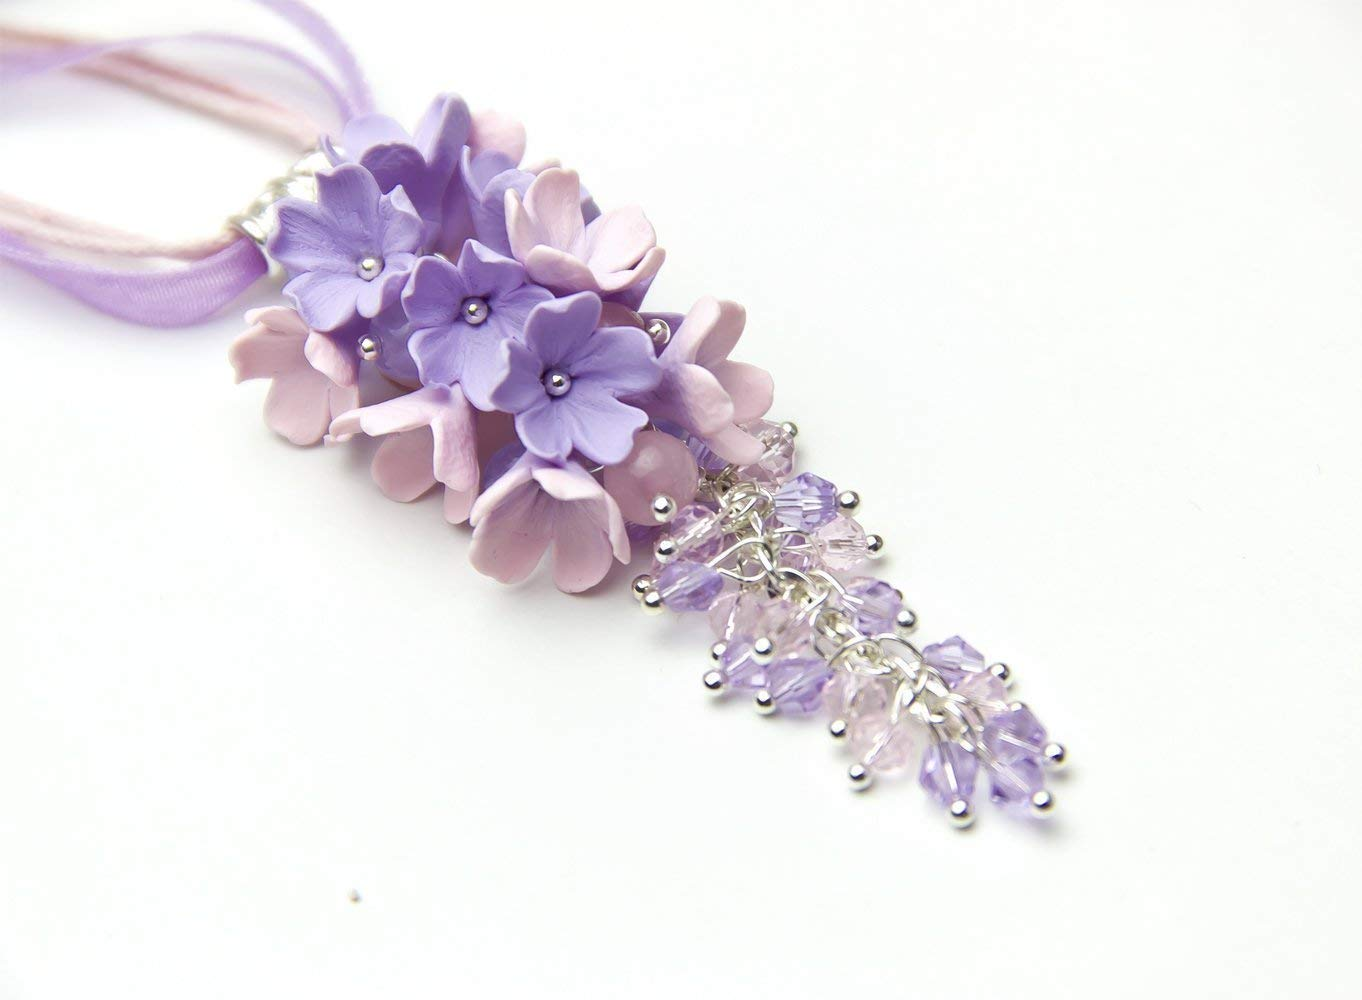 Polymer Clay Spring Hortensia Flowers. Handmade JEWLERY Turquoise and light purple pastel COLORS Romantic Floral Bead Necklace